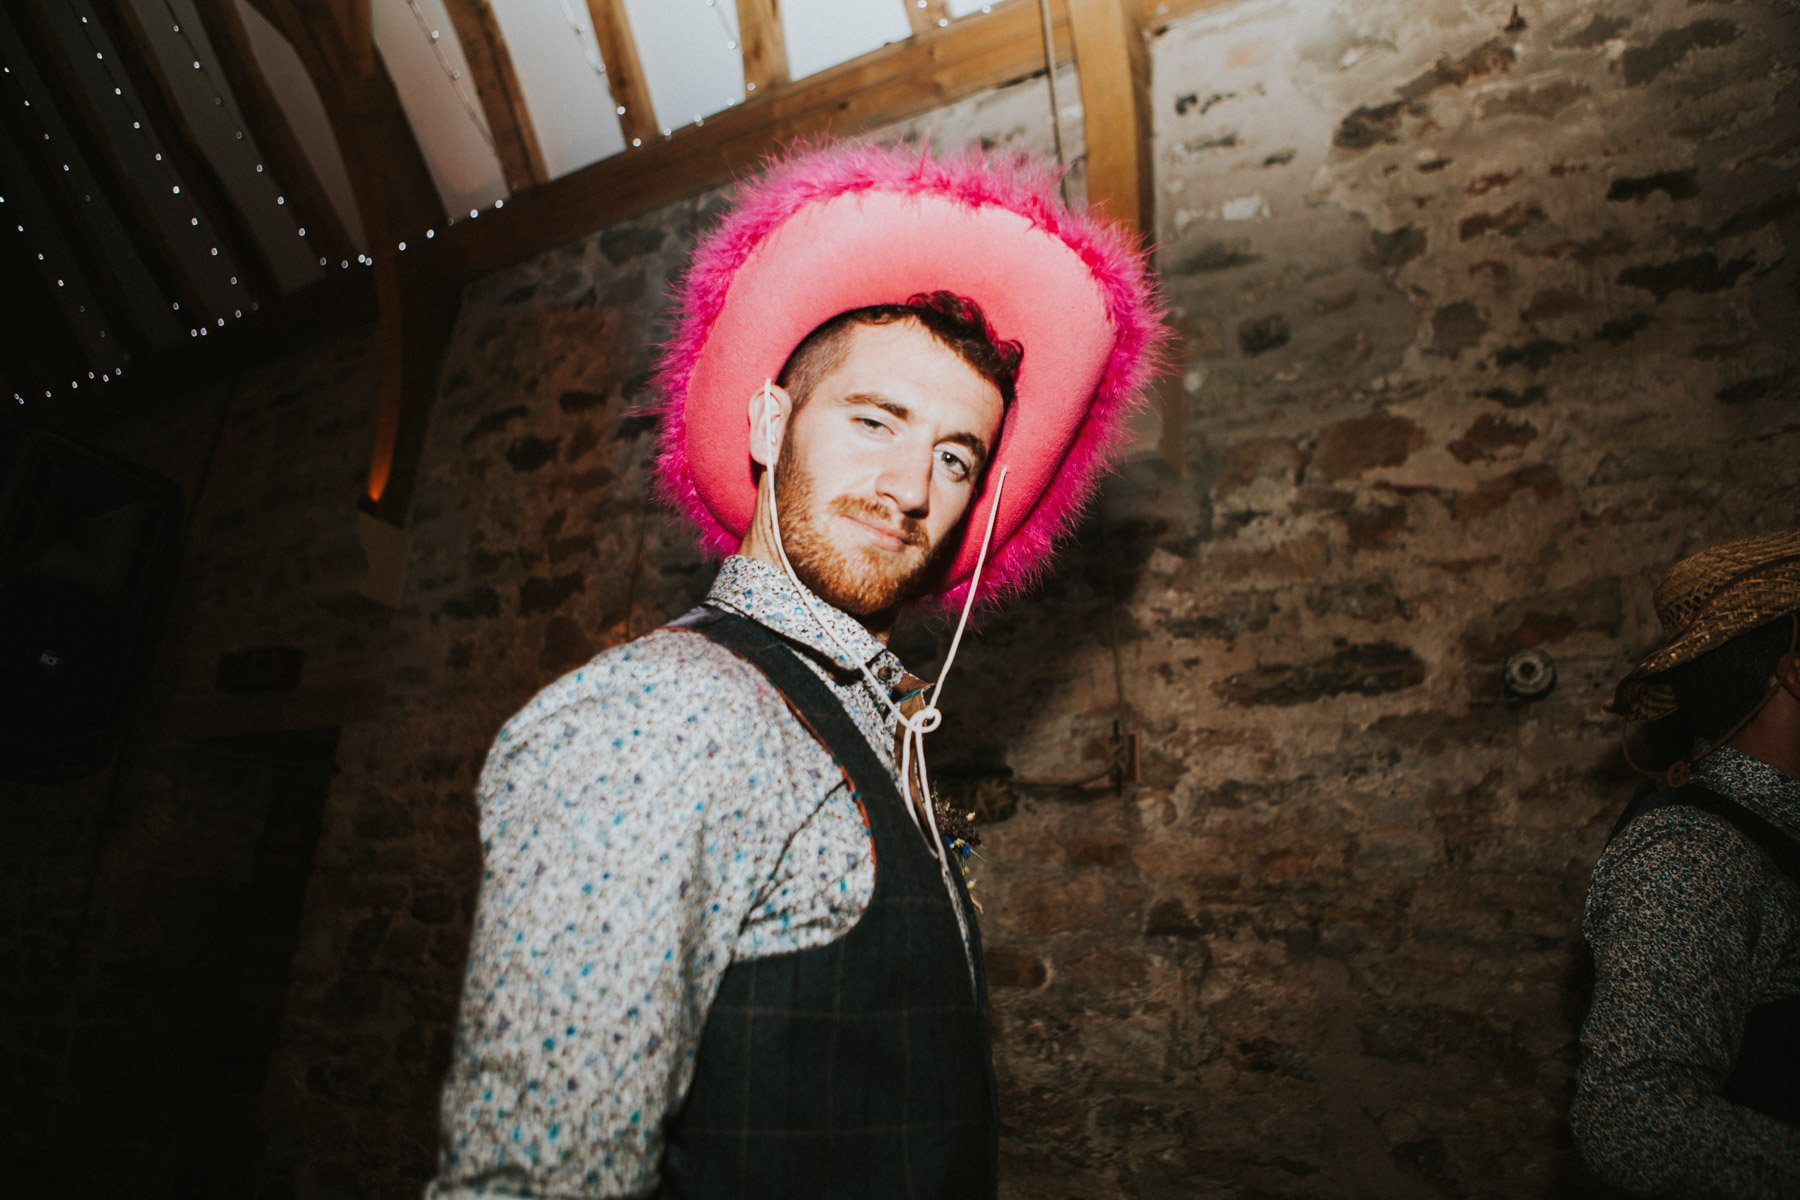 Healey Barn Wedding -Best man dancing with pink cowboy hat